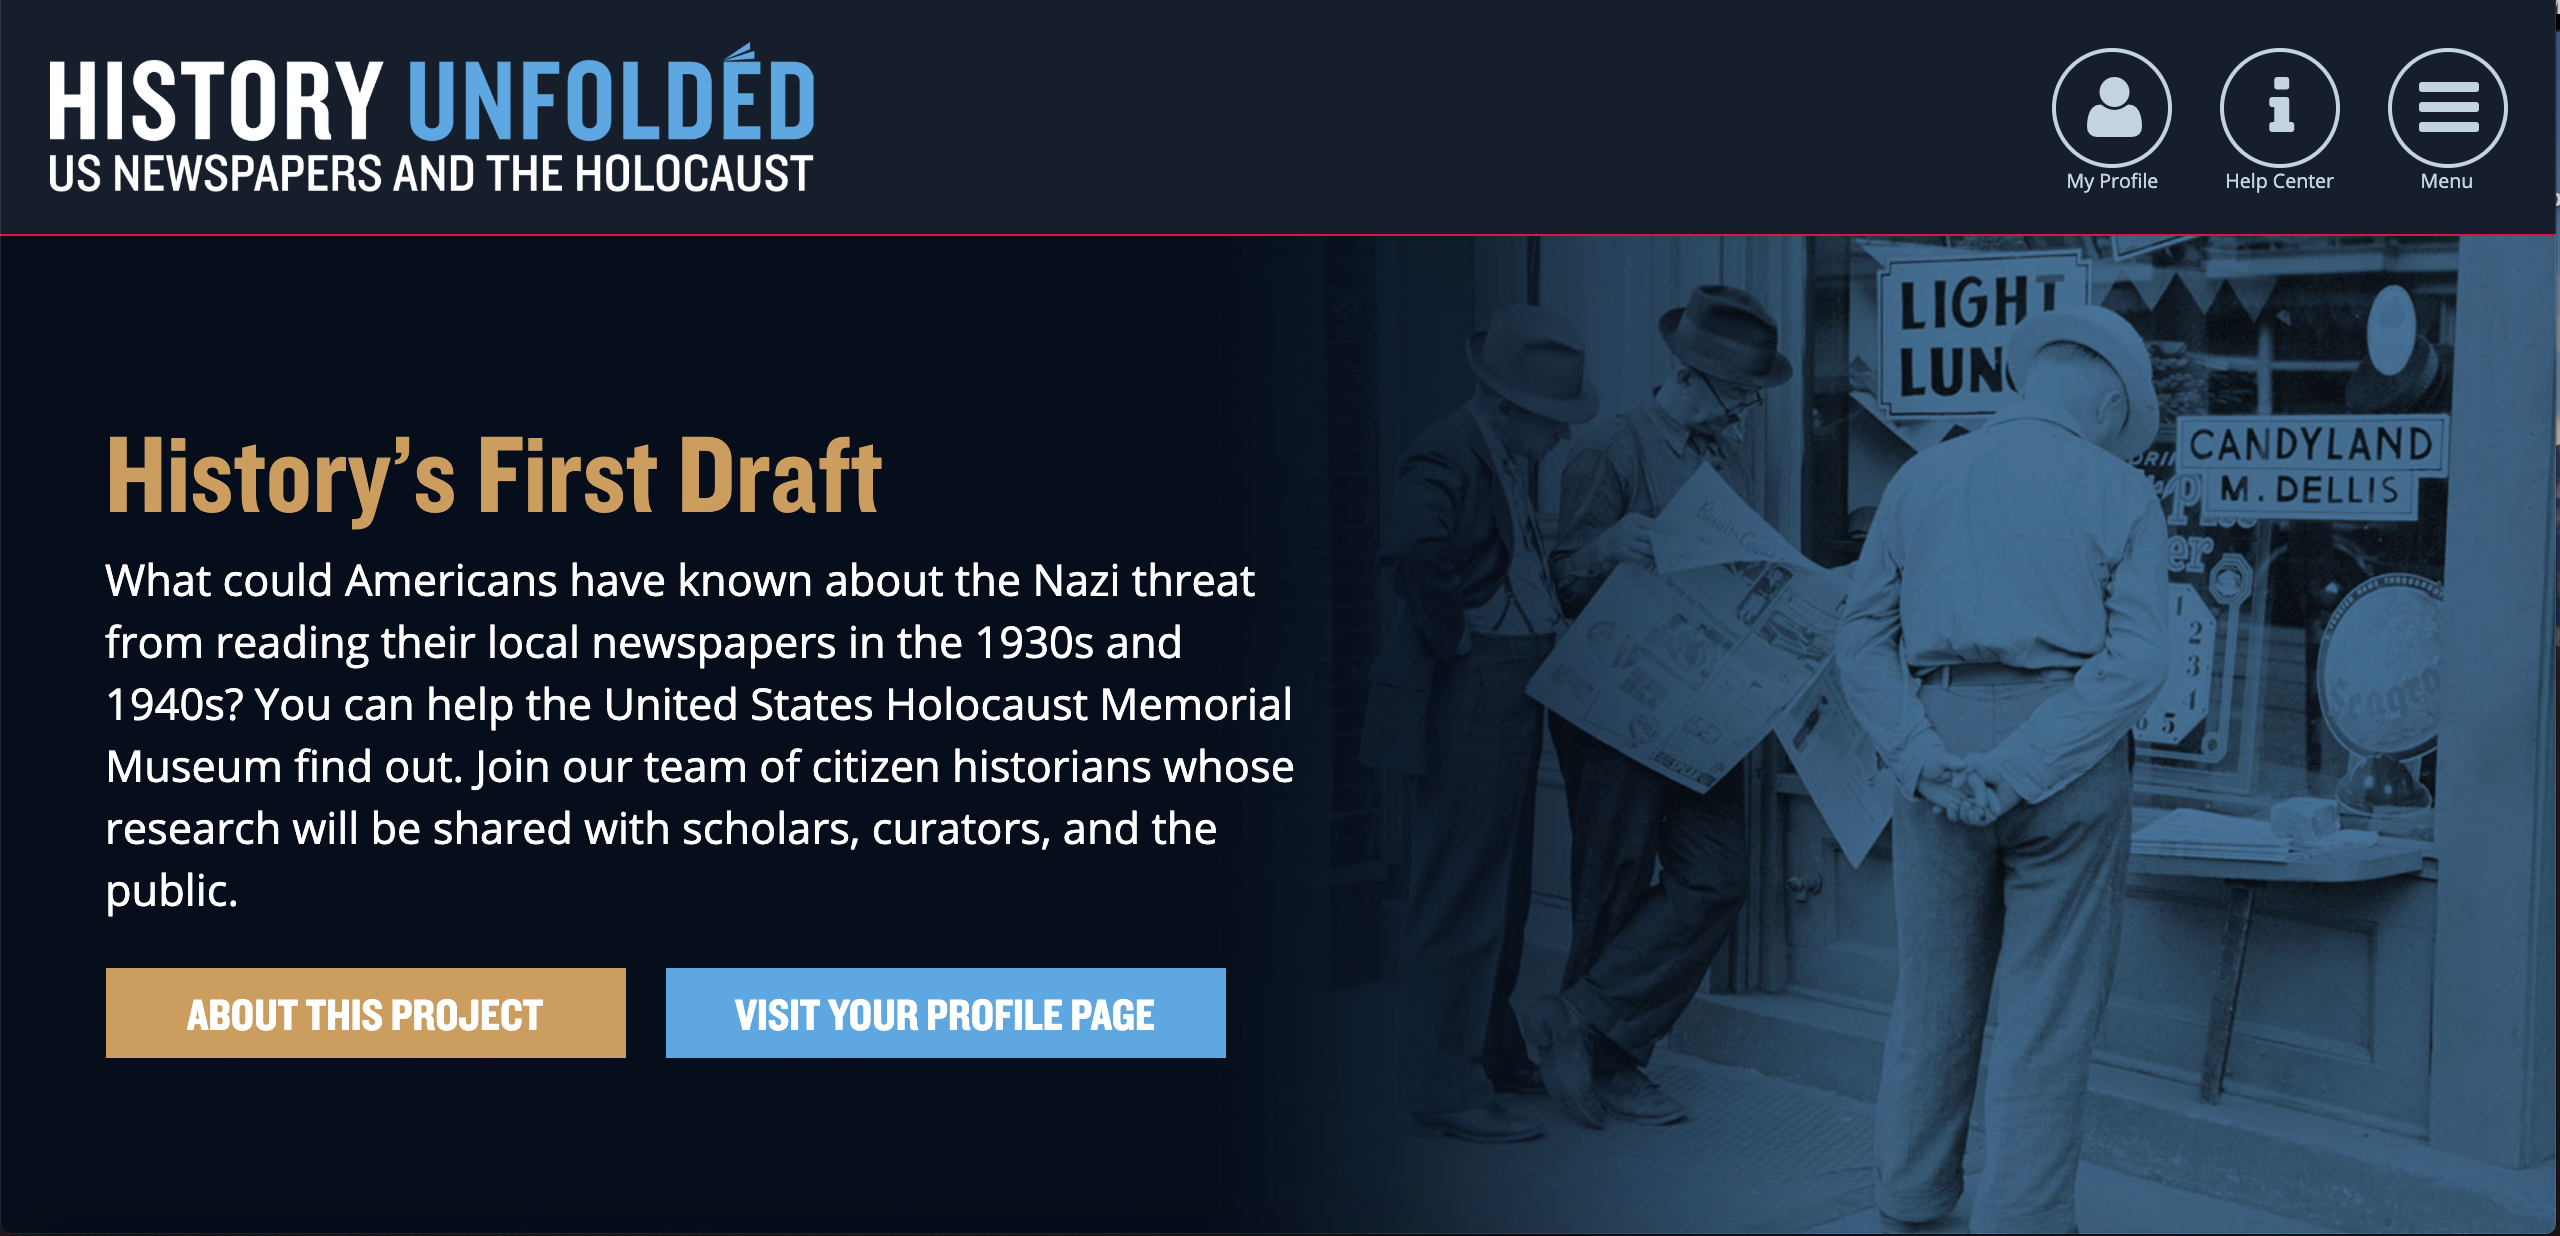 screenshot of the History Unfolded project, with introduction of the project, men reading newspapers, and buttons to learn more about the project